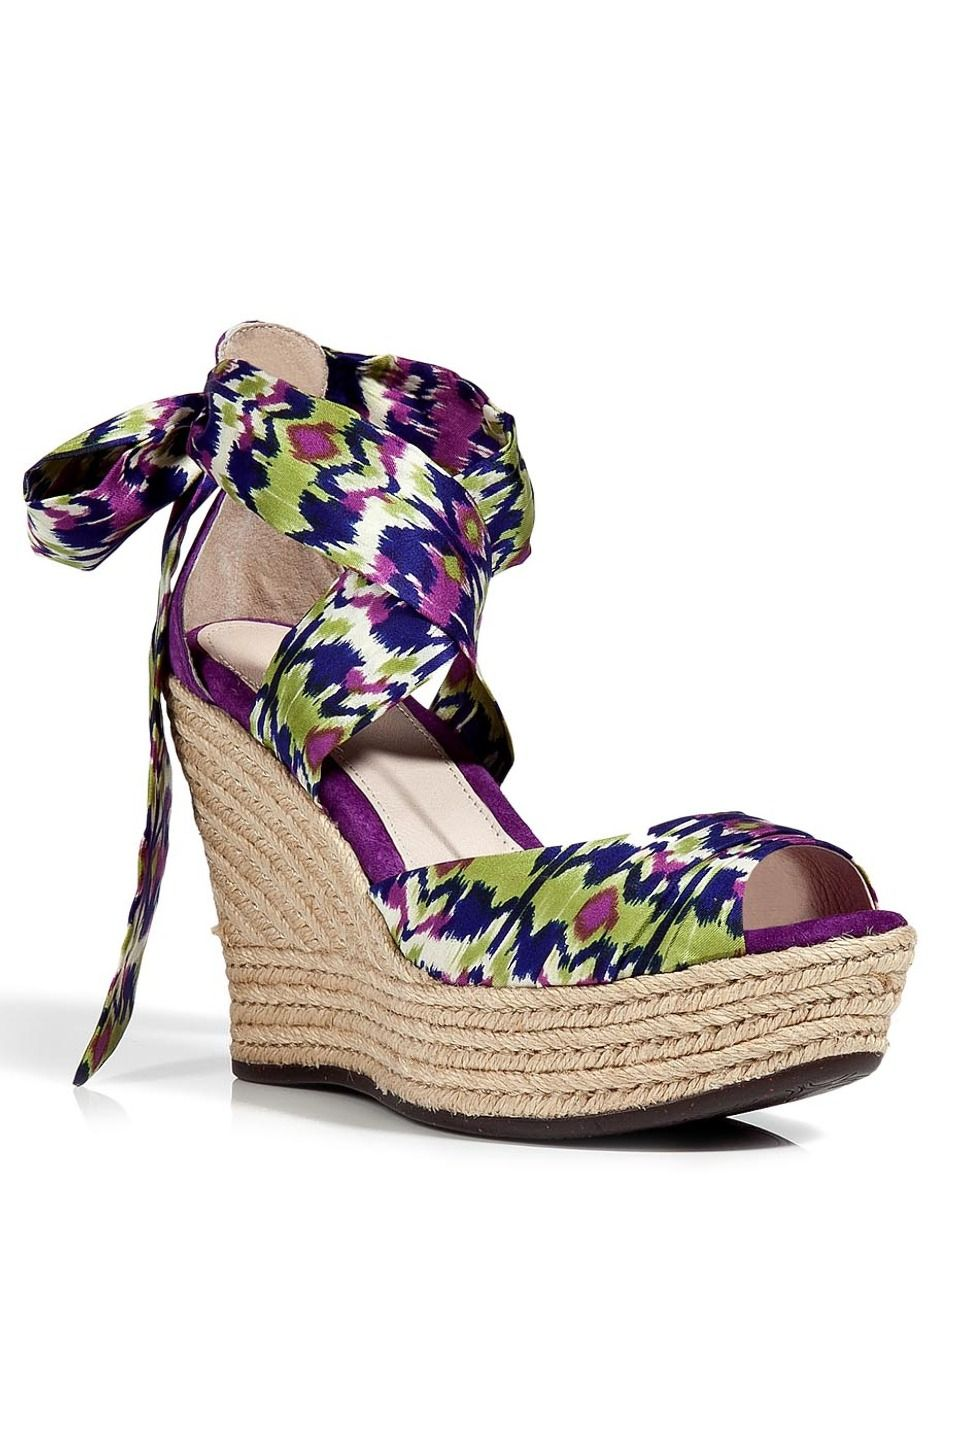 e998be0d119 Ugg Ladies Lucianna Sandals In Grape Multicolor - purple ikat wrap wedges.  wow